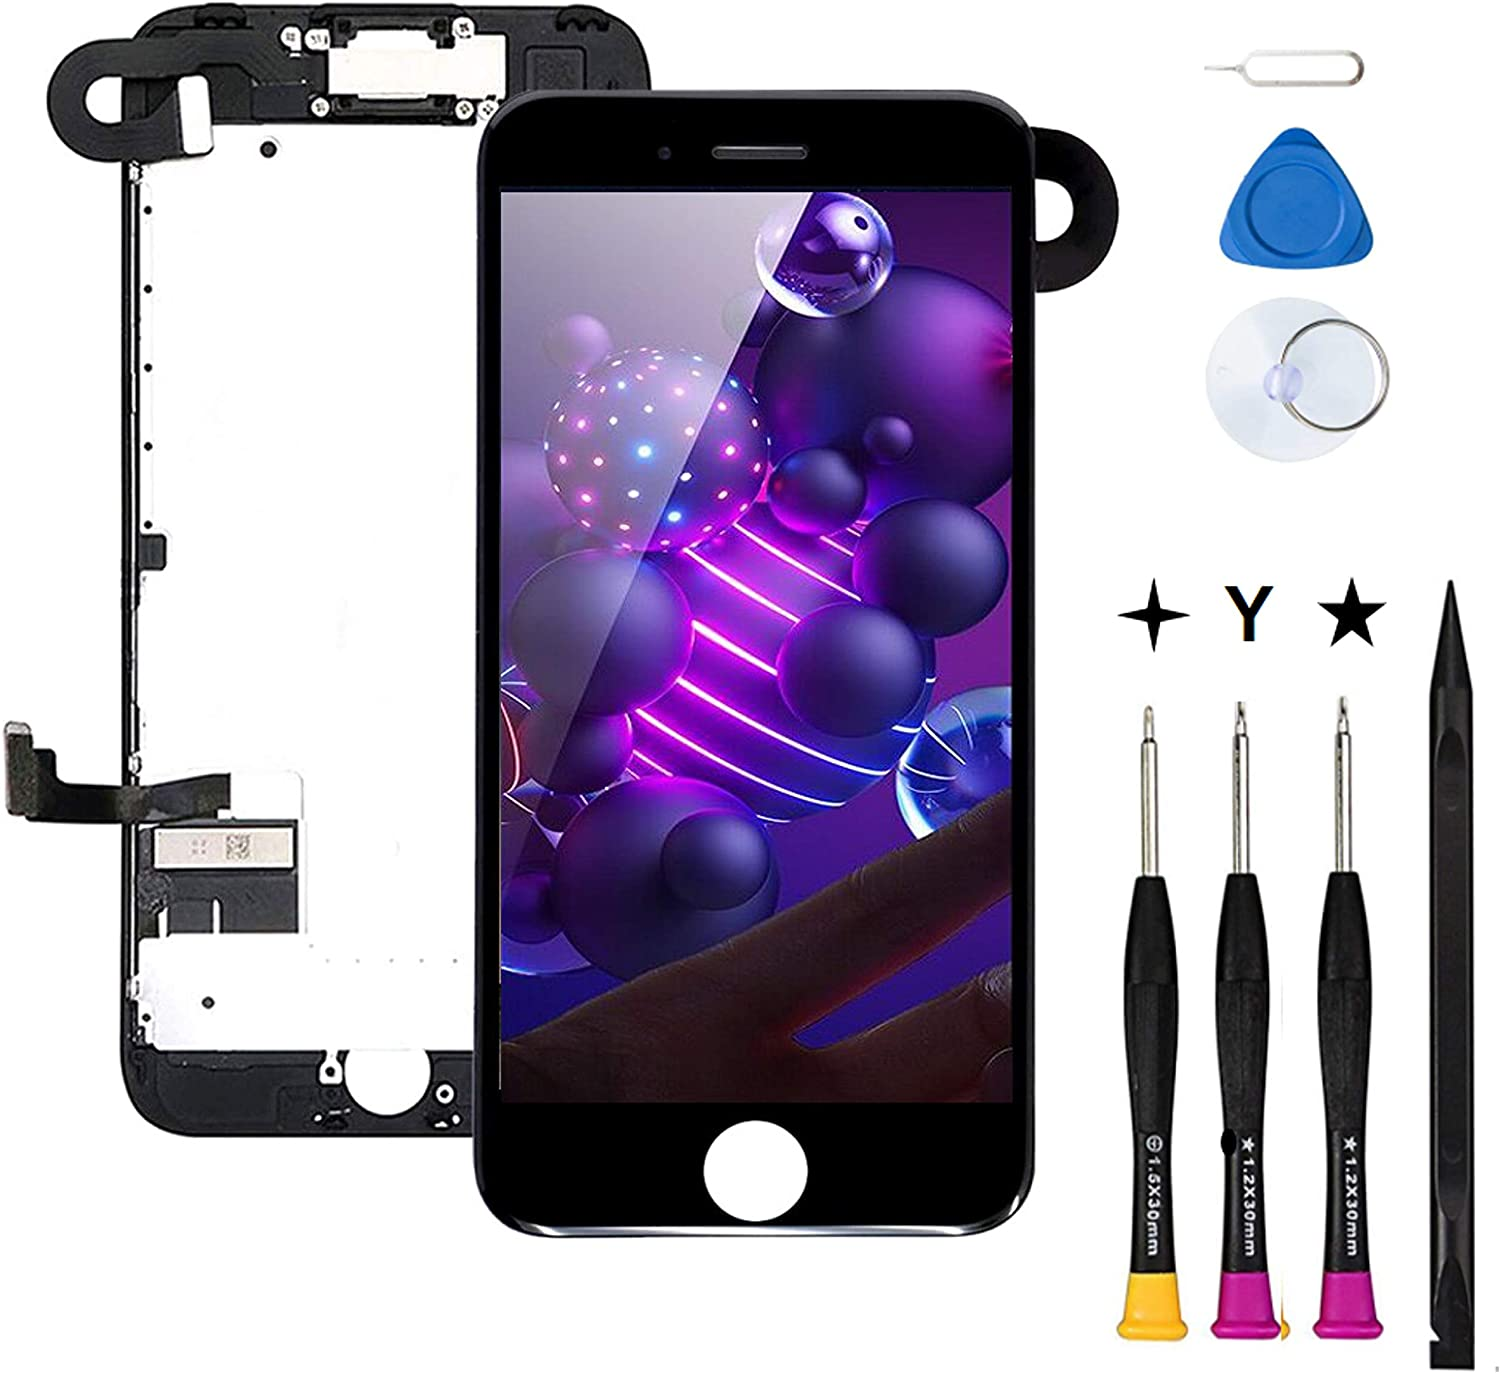 COASD Pre-Assembled Compatible with 8 Free shipping anywhere in the price nation iPhone Replacement Screen